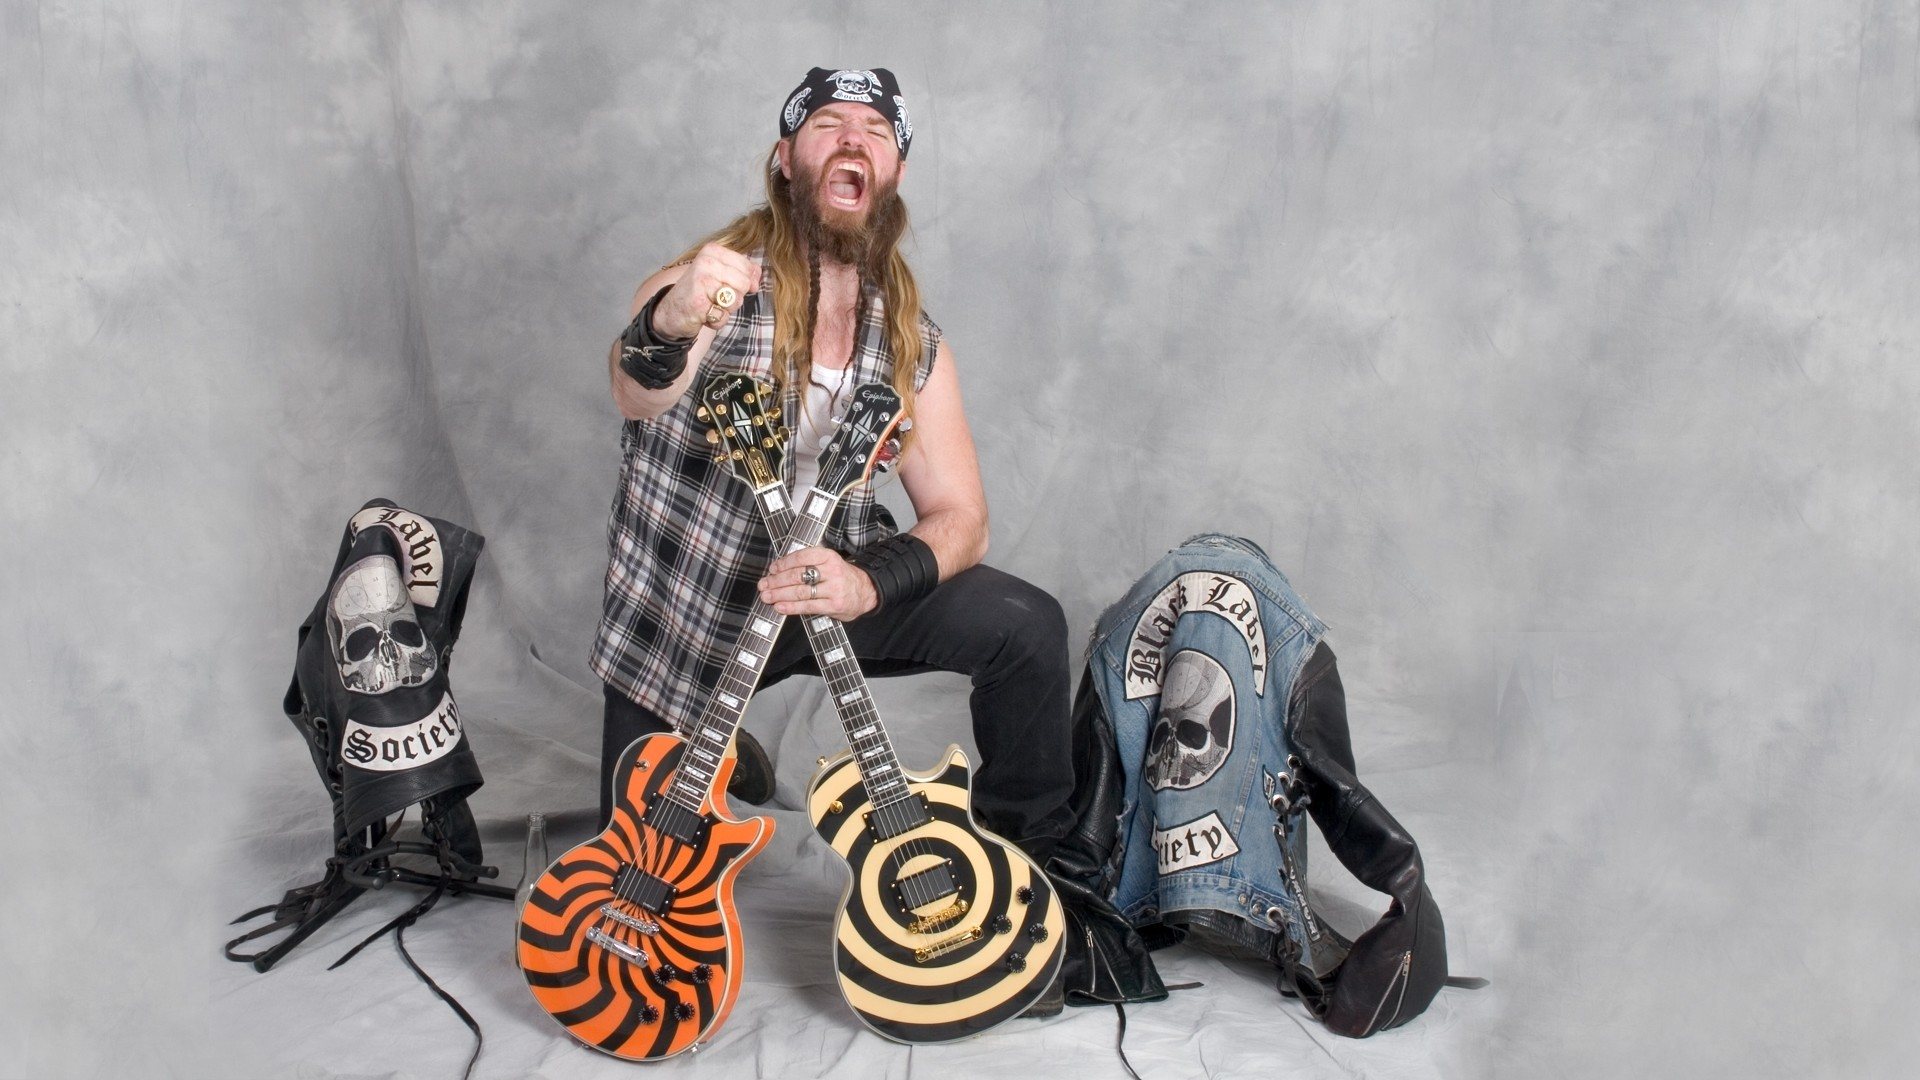 1920x1080 Music - Zakk Wylde Black Label Society Guitar Guitarist Heavy Metal  Wallpaper